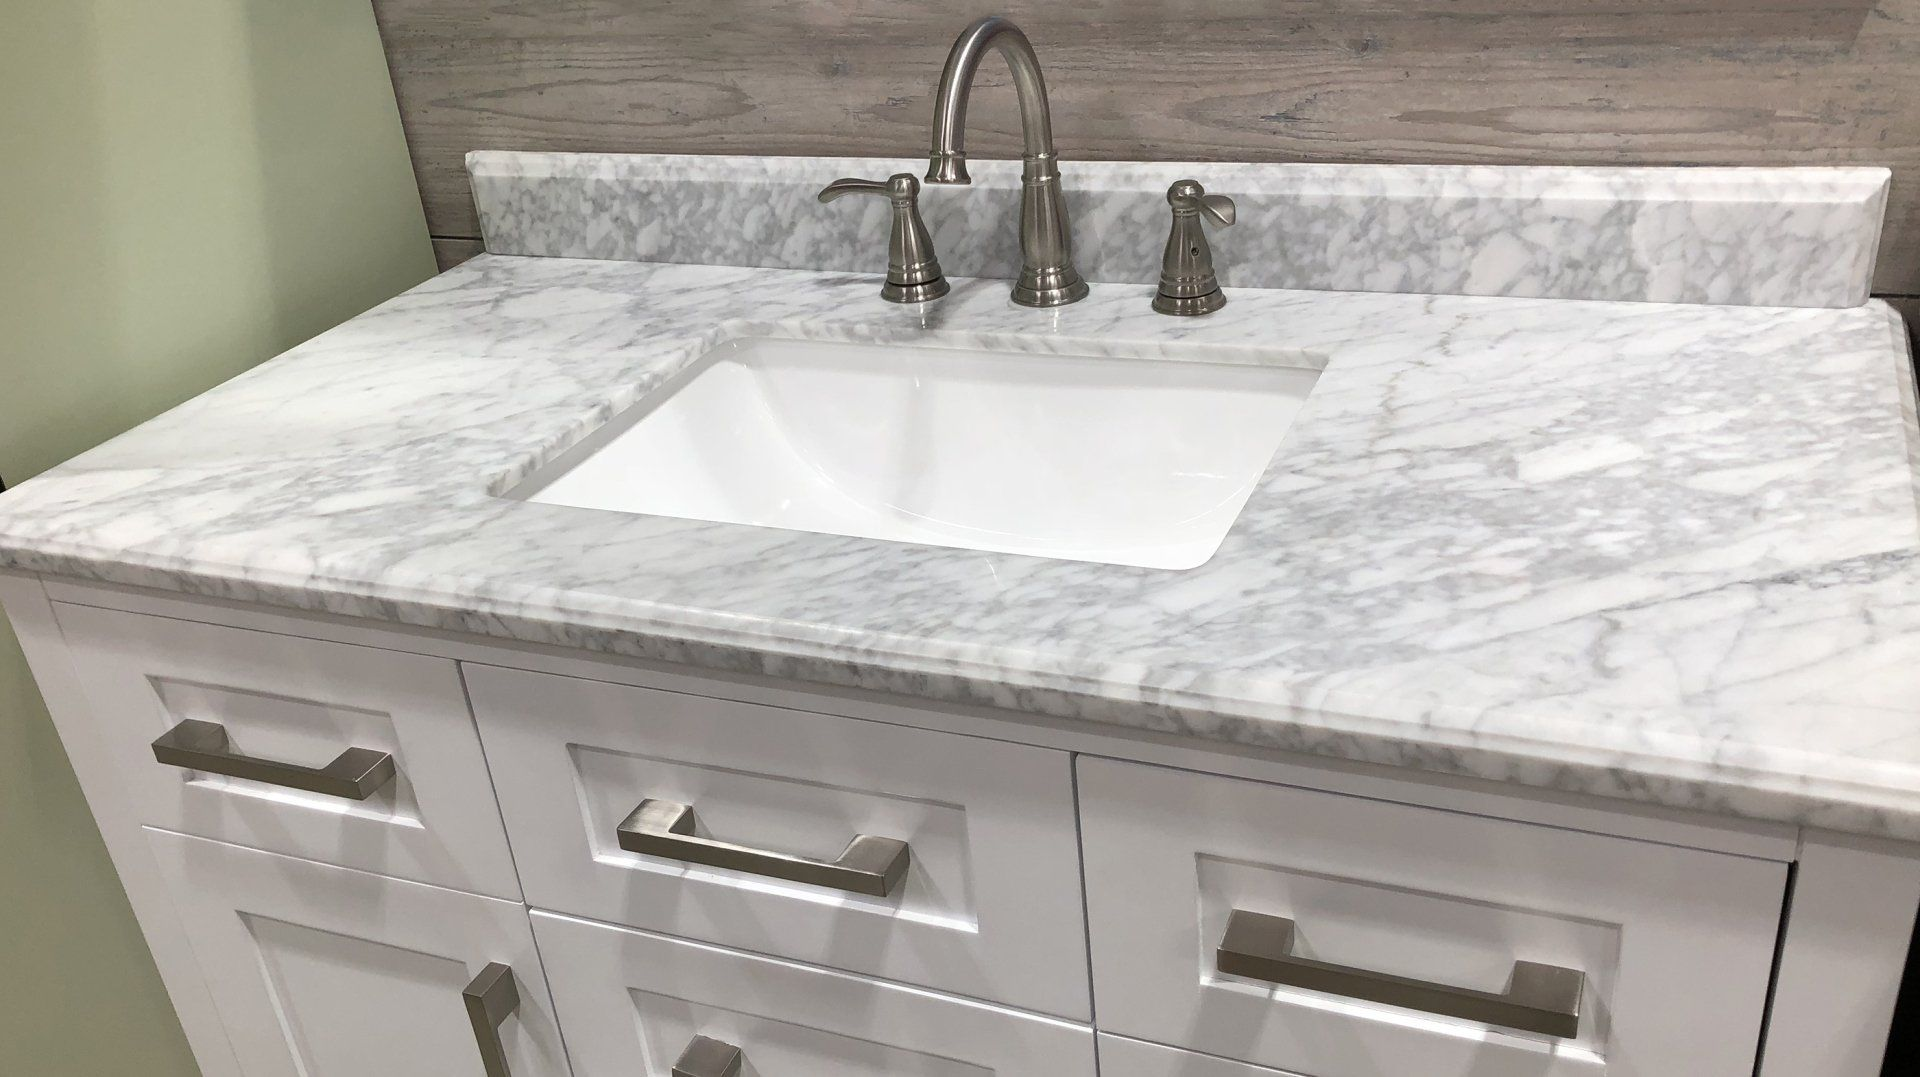 3 Reasons To Choose Quartz Countertops For Your Commercial Facility